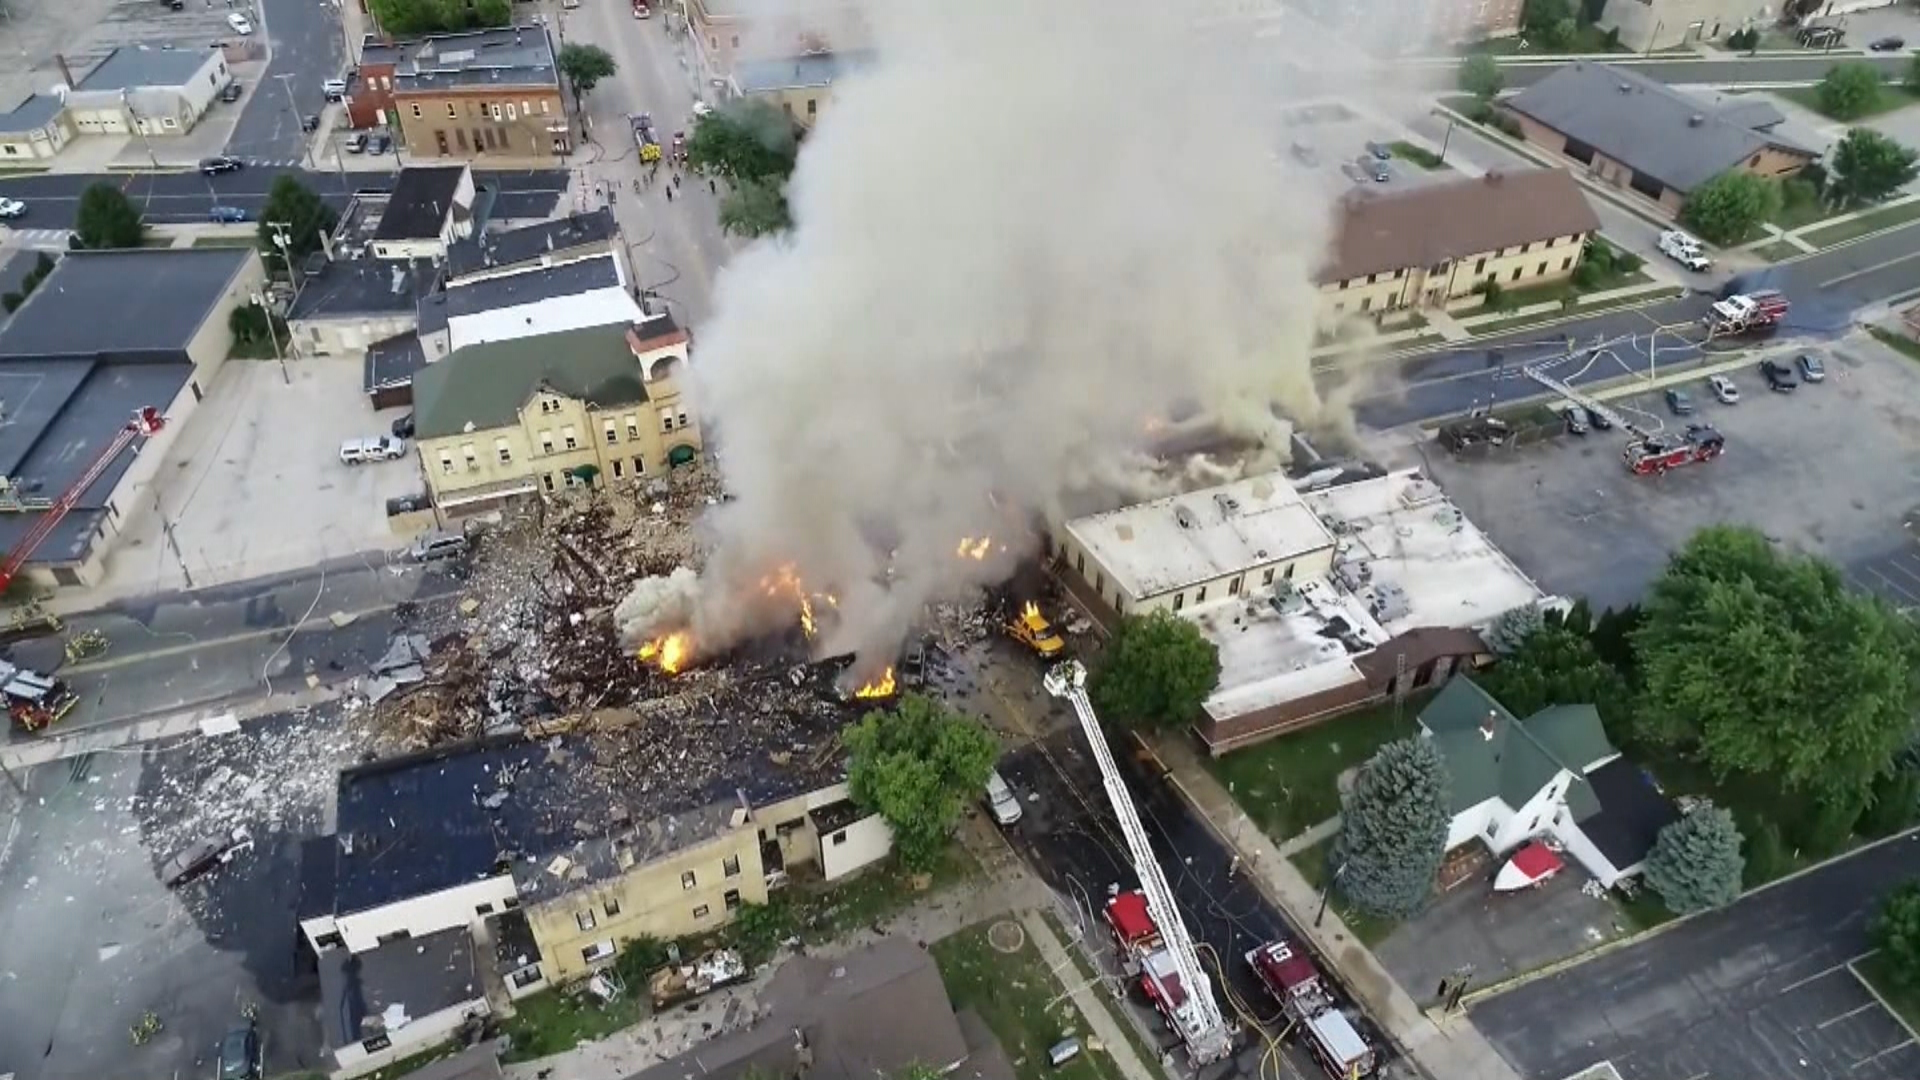 Smoke rises from an explosion in downtown Sun Prairie July 10, 2018. (Image taken from video provided by WMTV-TV)